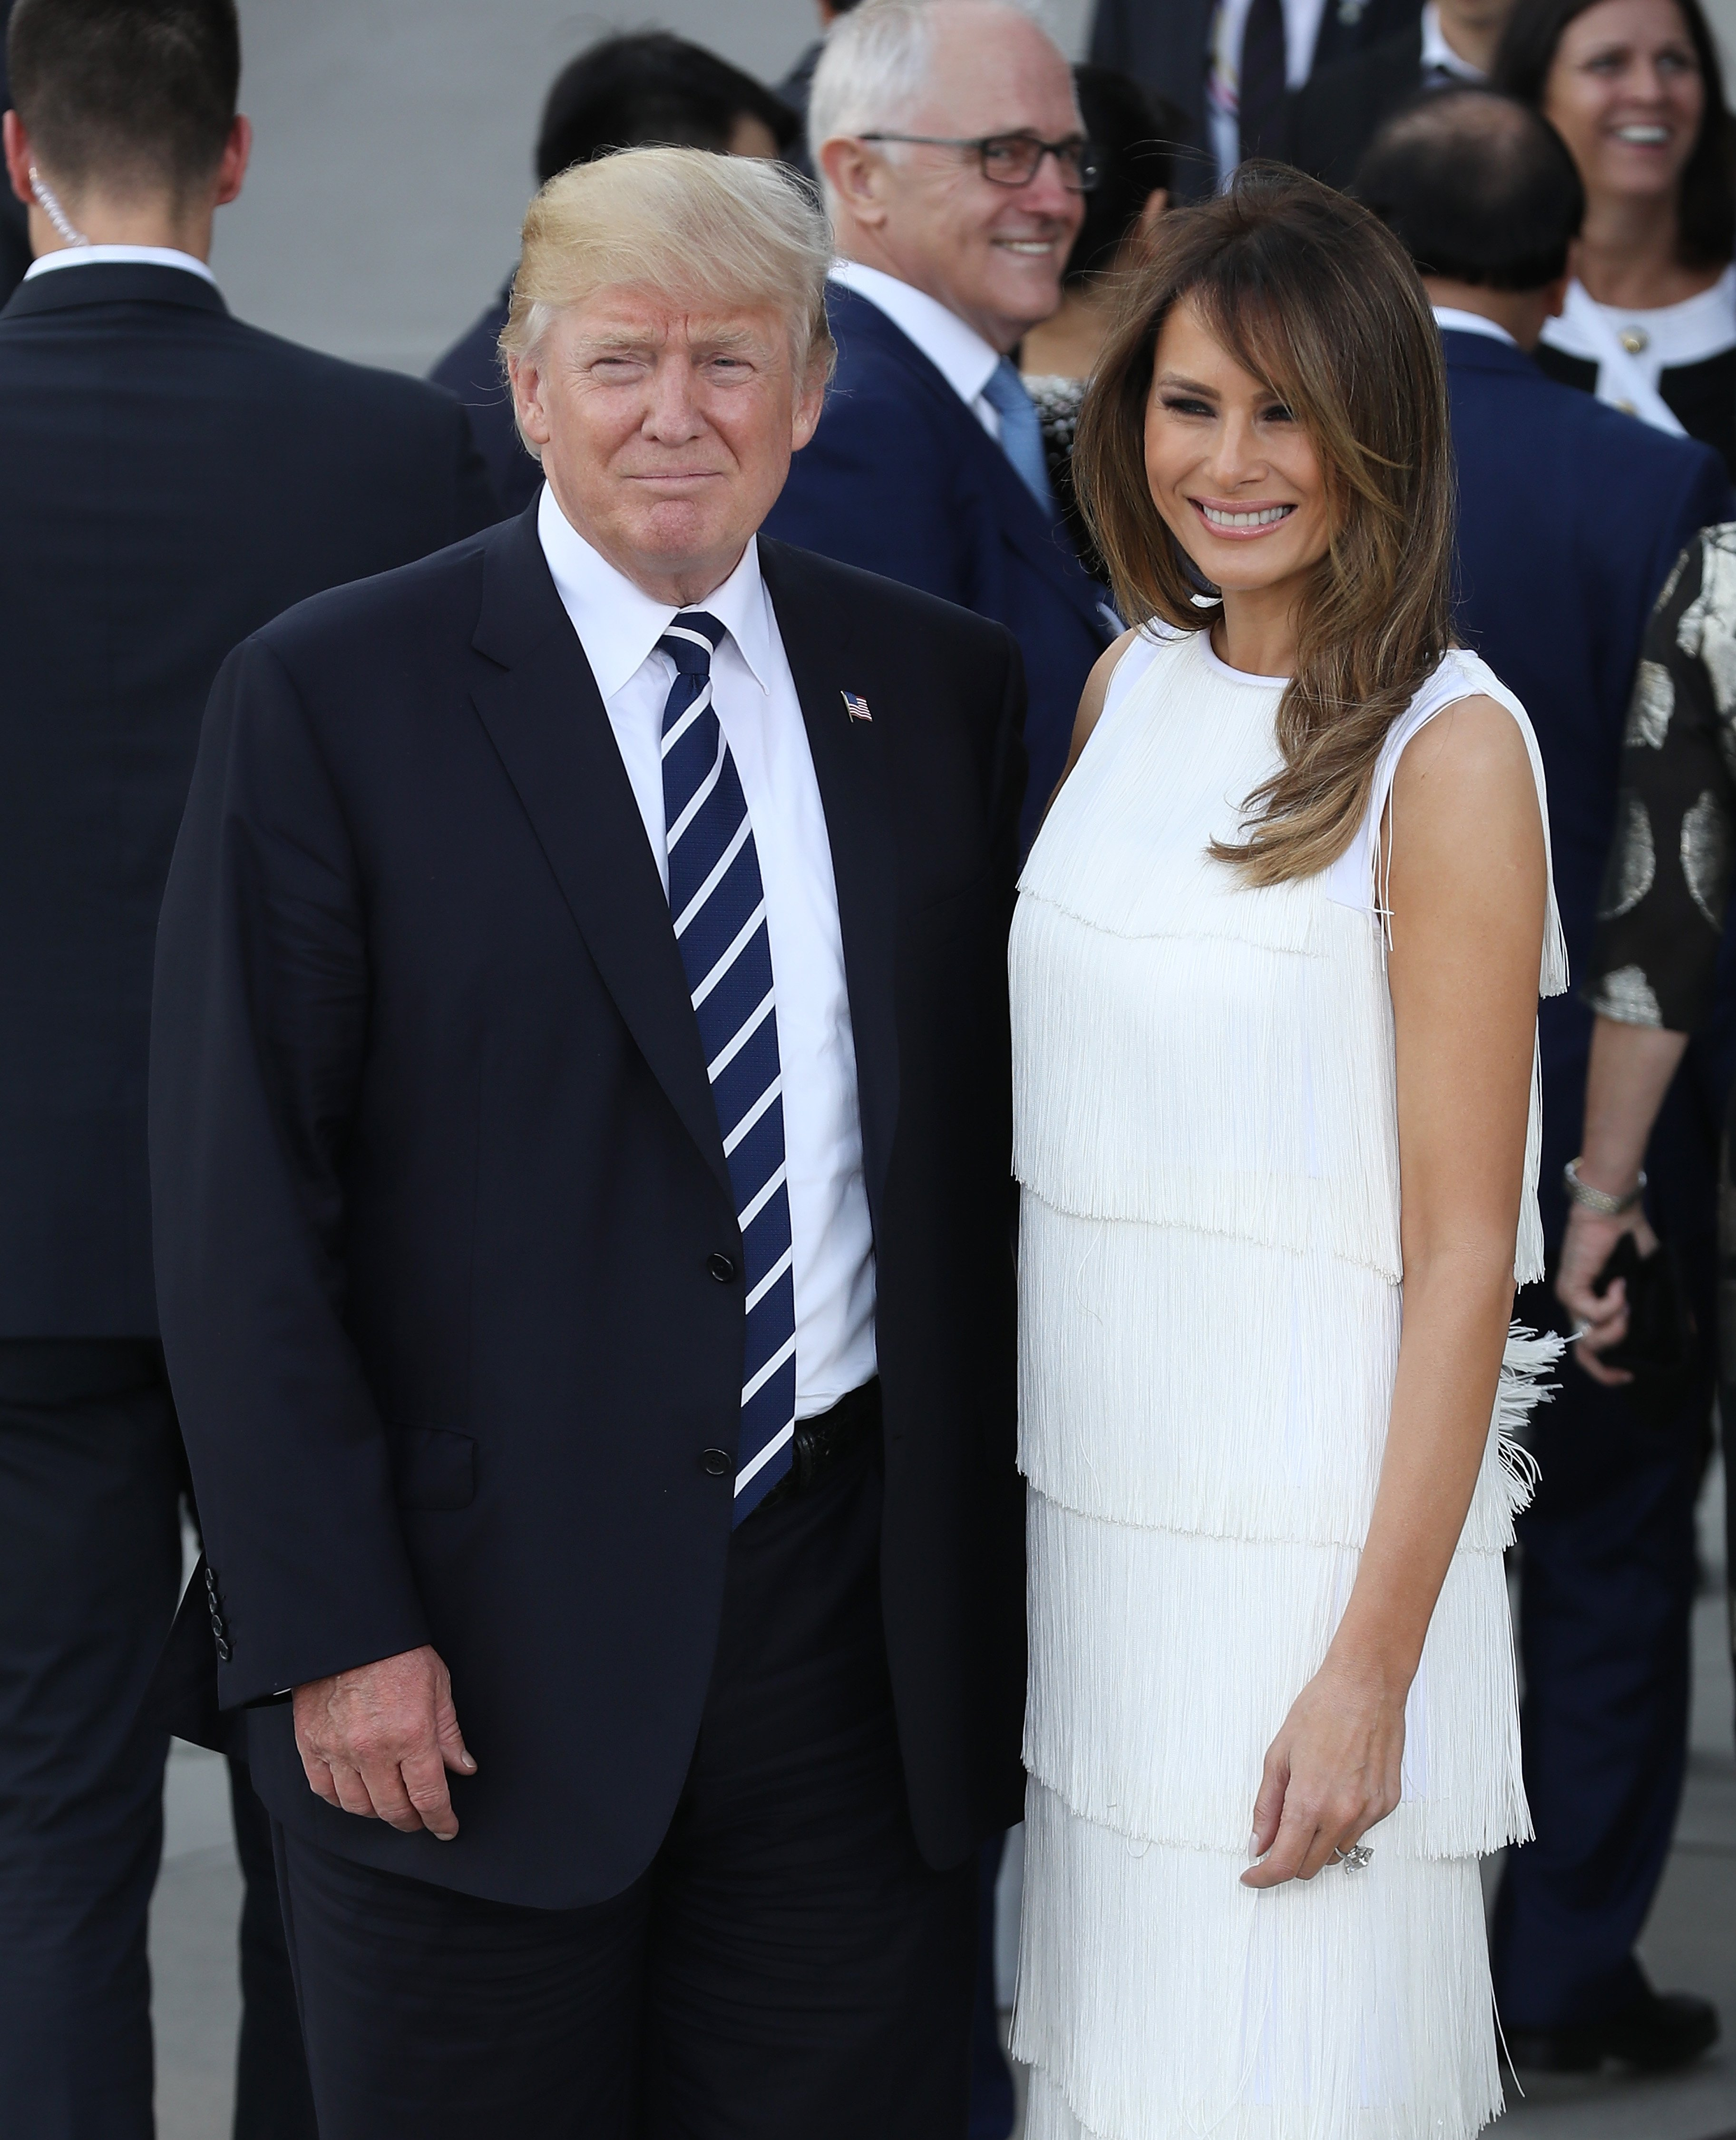 Donald and Melania Trump at the 2017 G20 economic summit in Hamburg, Germany | Photo: Getty Images